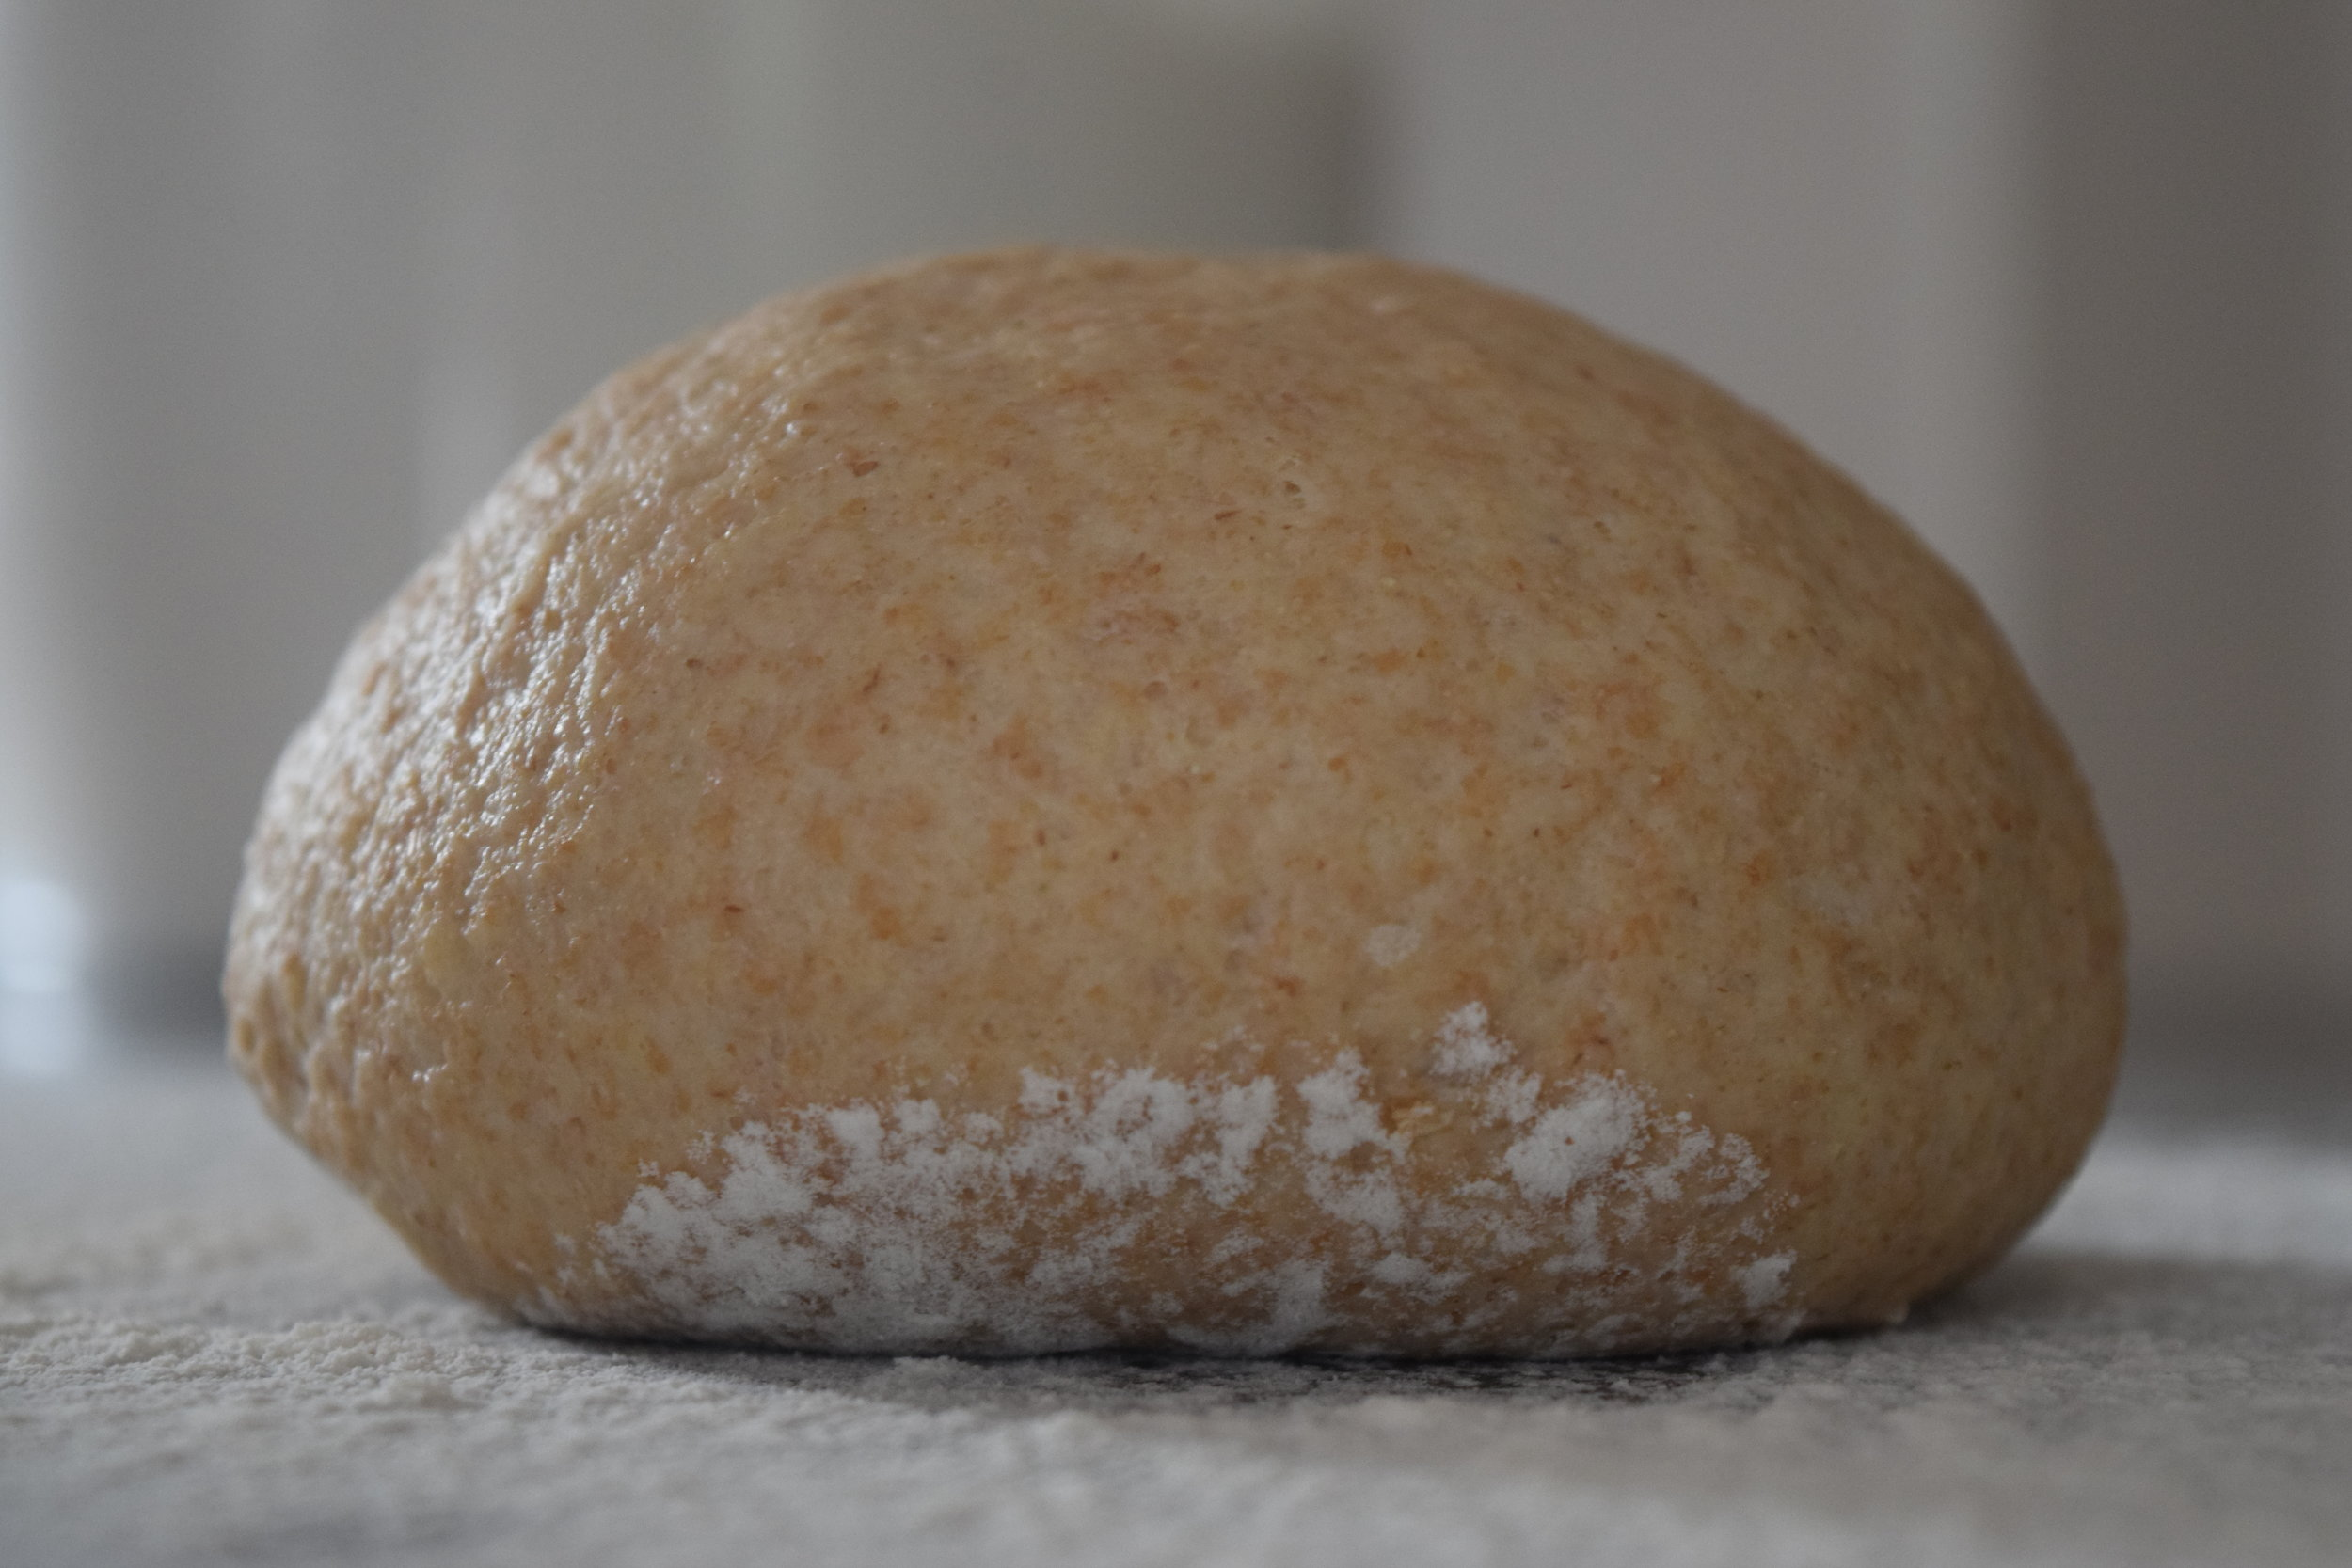 Formed Dough